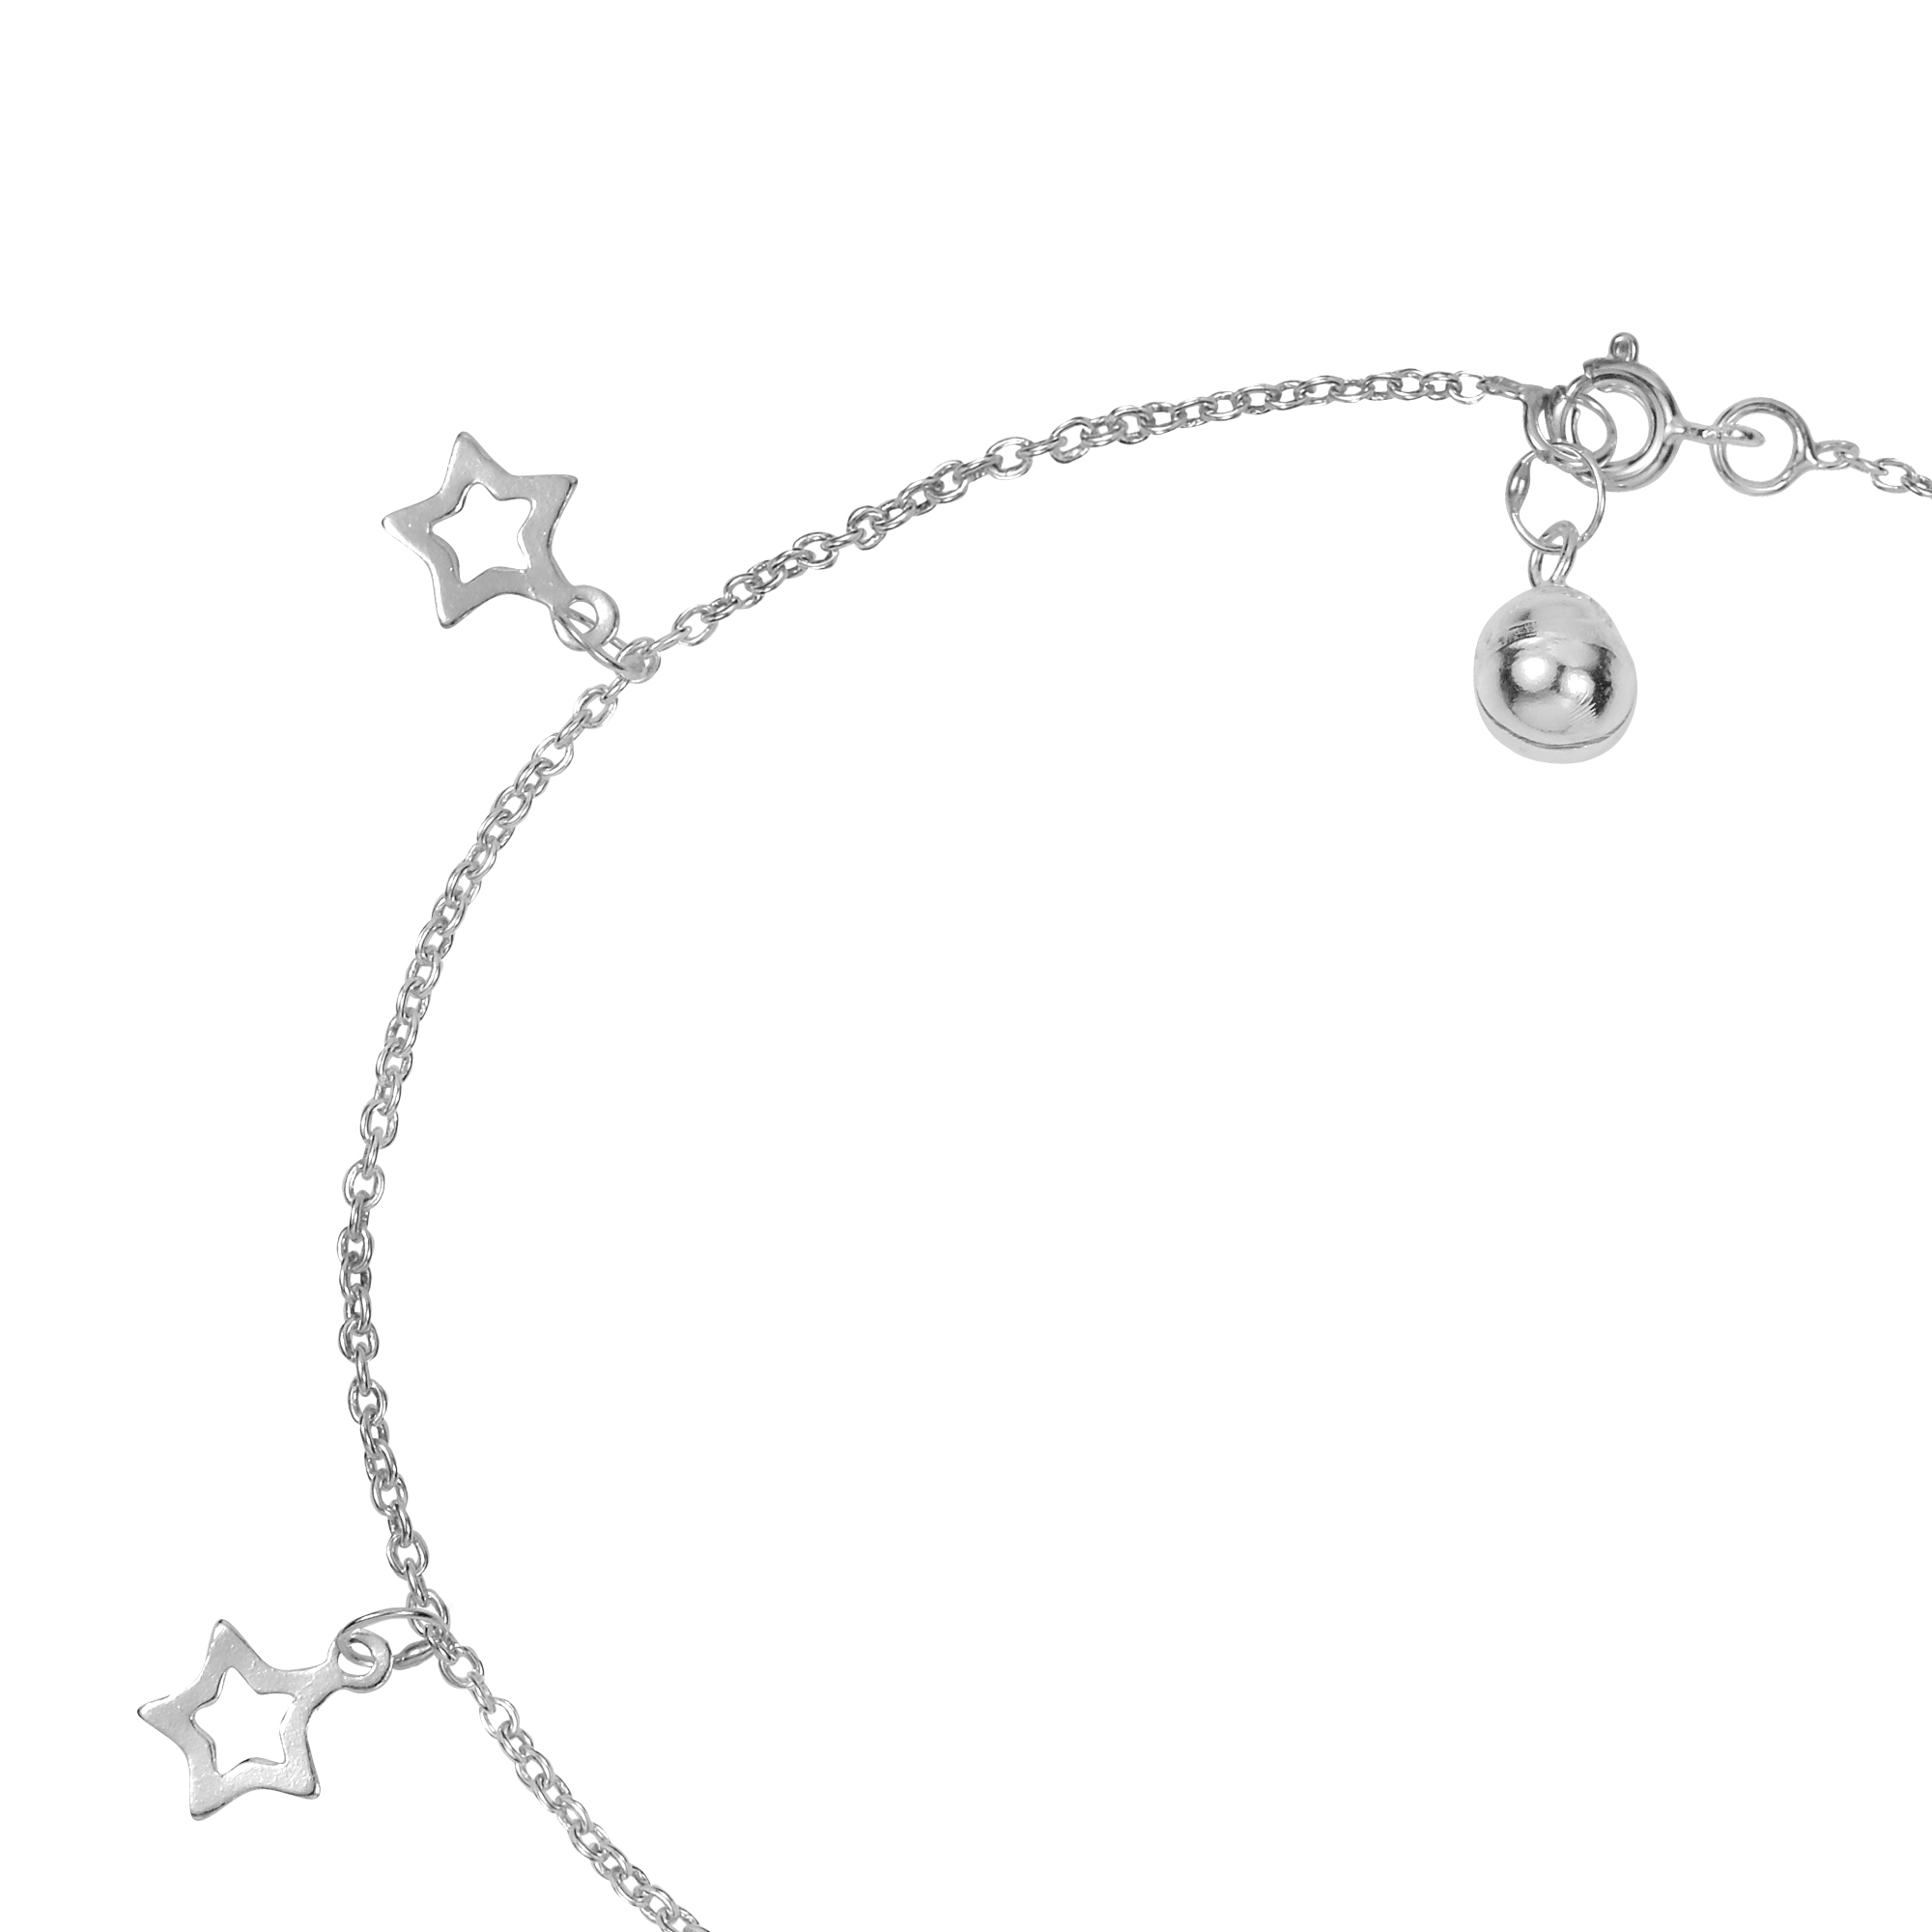 my sterling bracelet index anklet speidel silver charm and with first cross charms heart